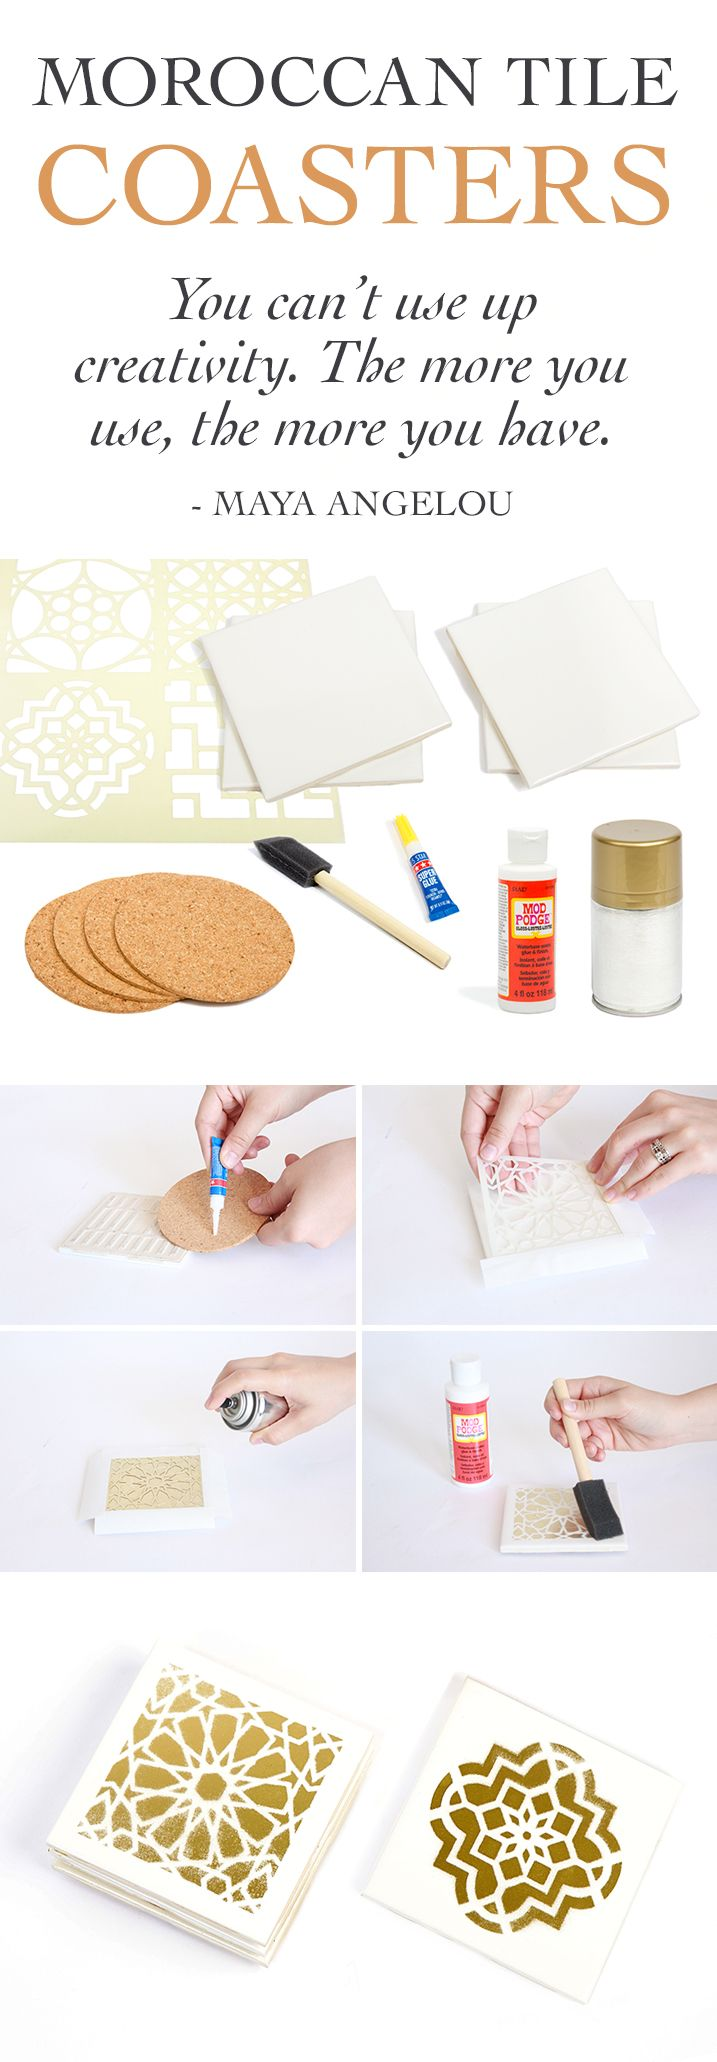 The Gift Someone Will Remember - DIY Decor